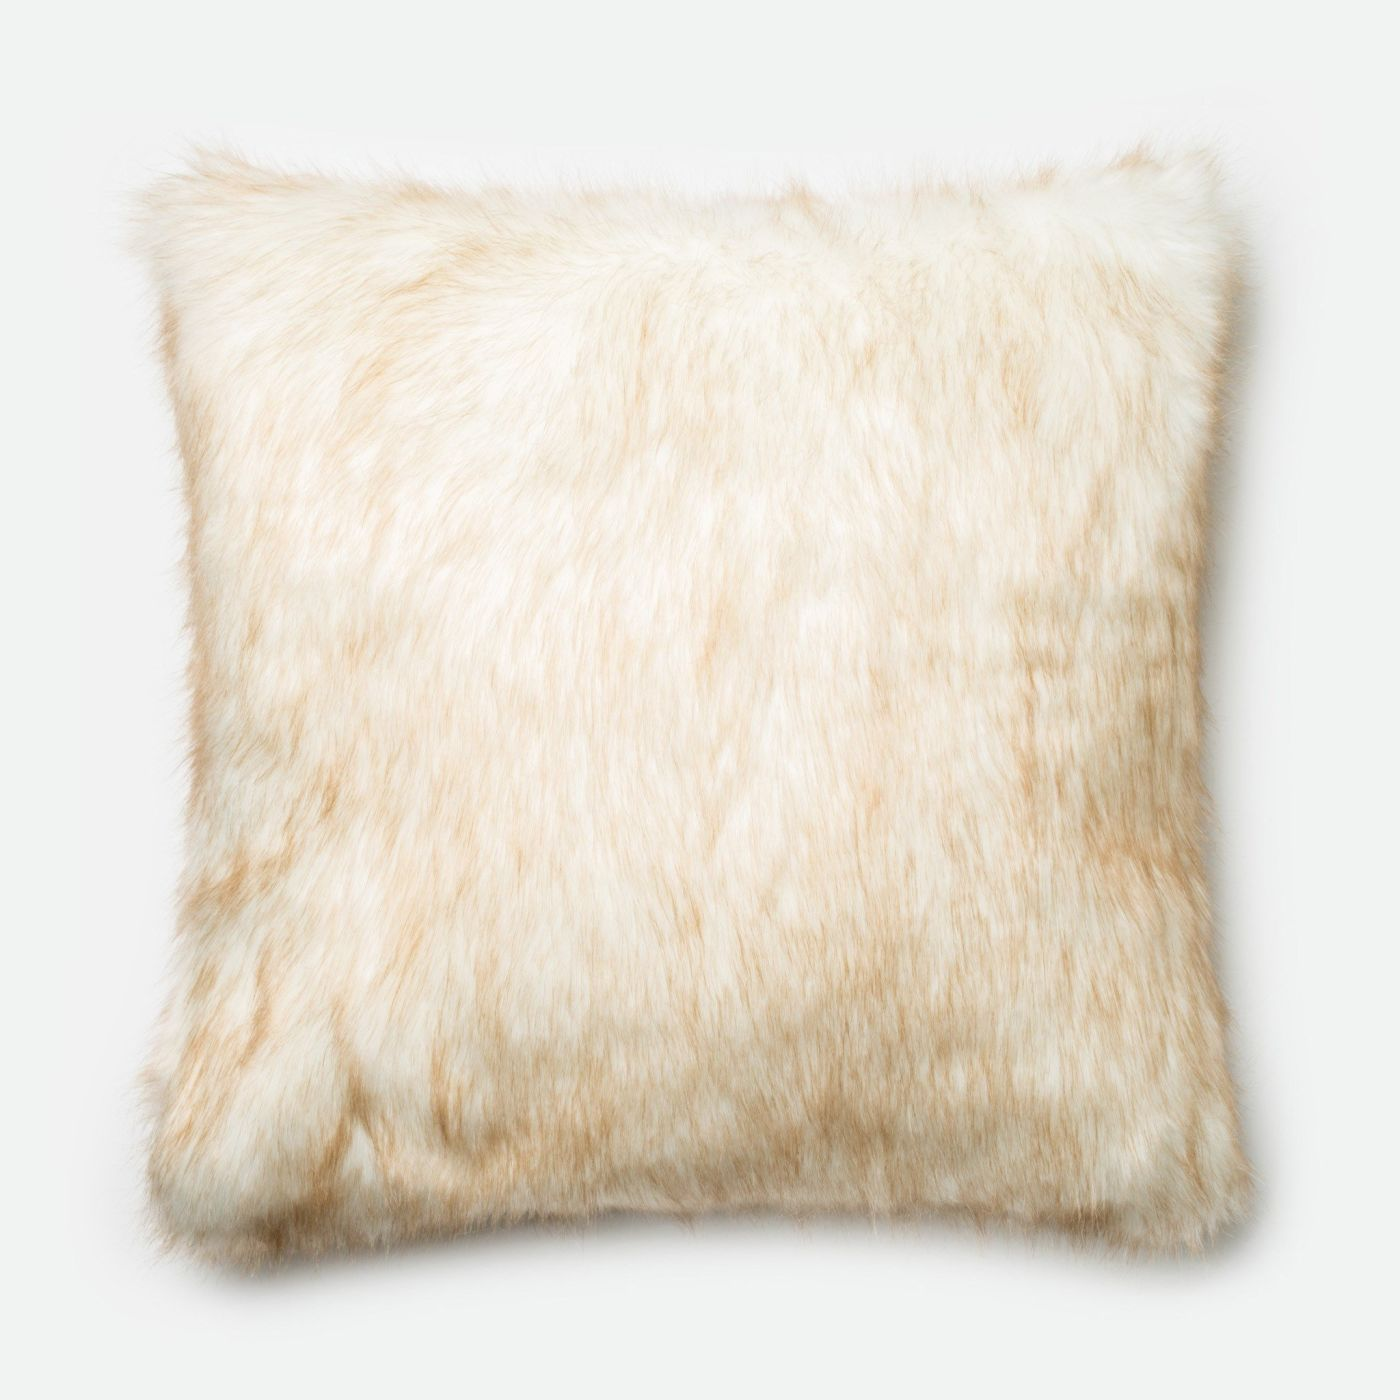 Throw Pillow Warehouse : Loloi Rugs Loloi Ivory / Camel Decorative Throw Pillow (P0270) DSETP0270IVCAPIL3. Only $109.00 ...